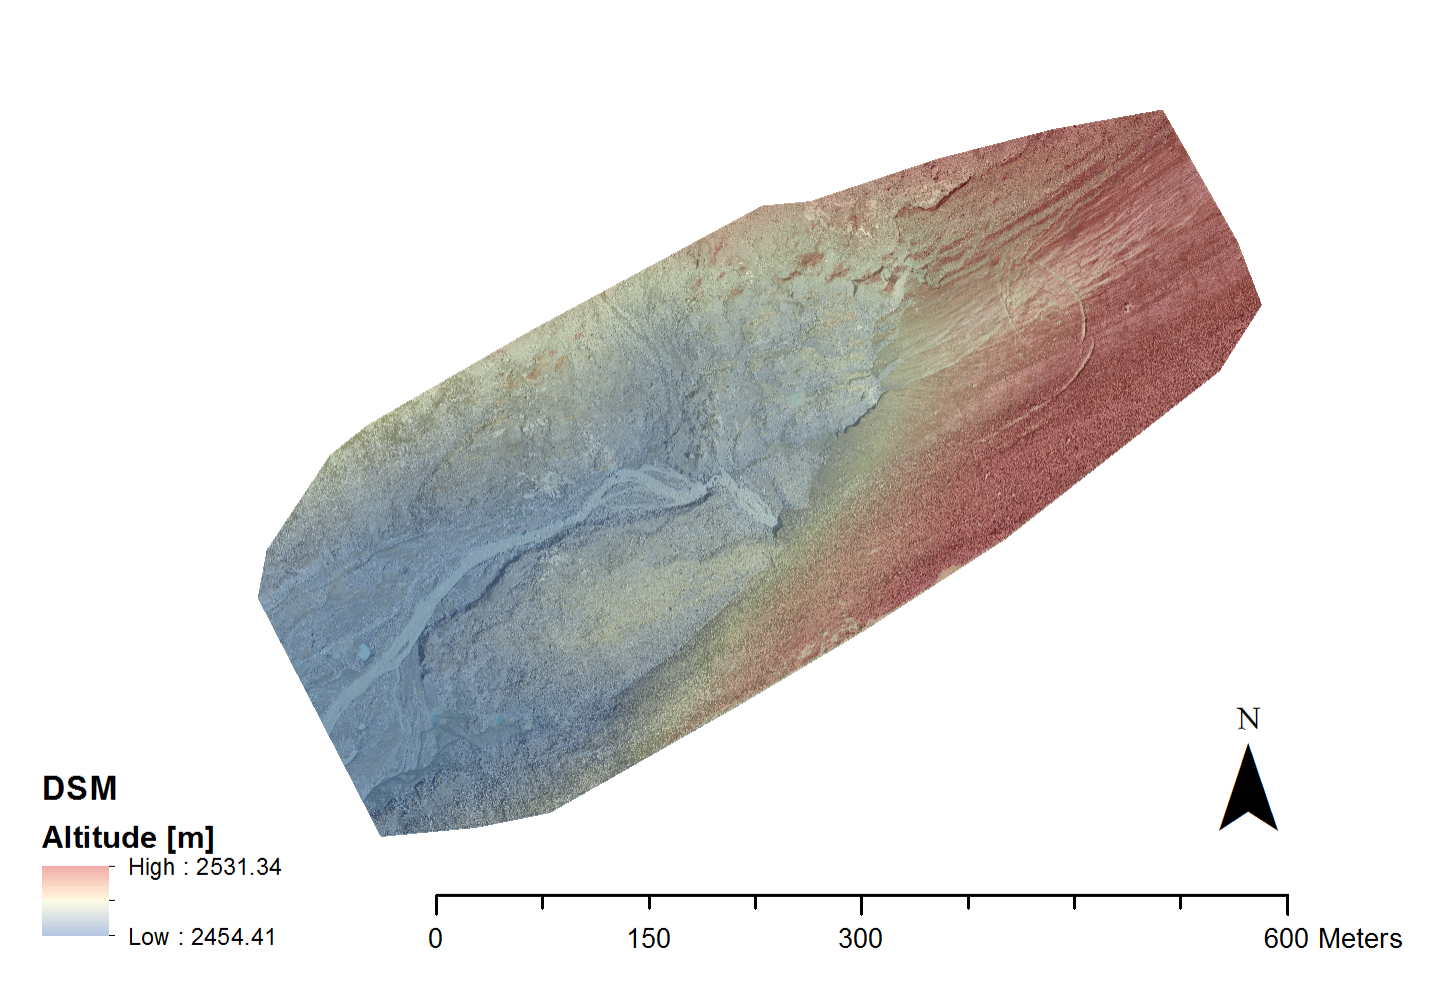 Digital Elevation Model and Orthophoto of the glacier margin generated from drone images